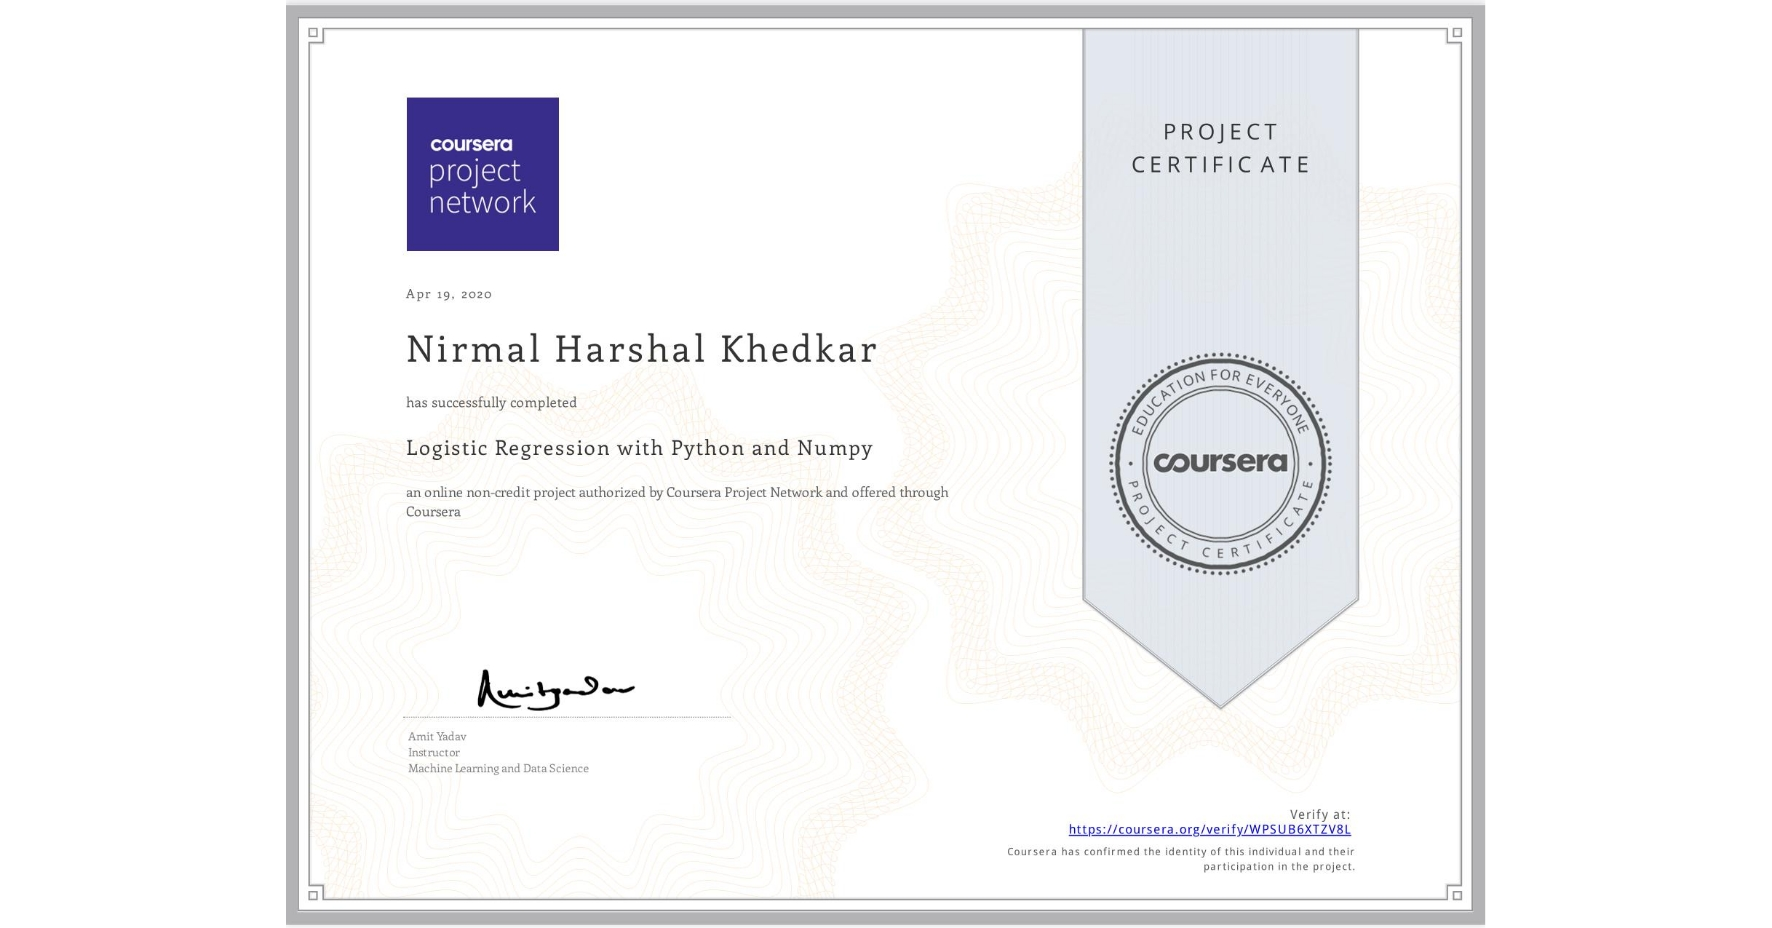 View certificate for Nirmal Harshal Khedkar, Logistic Regression with Python and Numpy, an online non-credit course authorized by Coursera Project Network and offered through Coursera